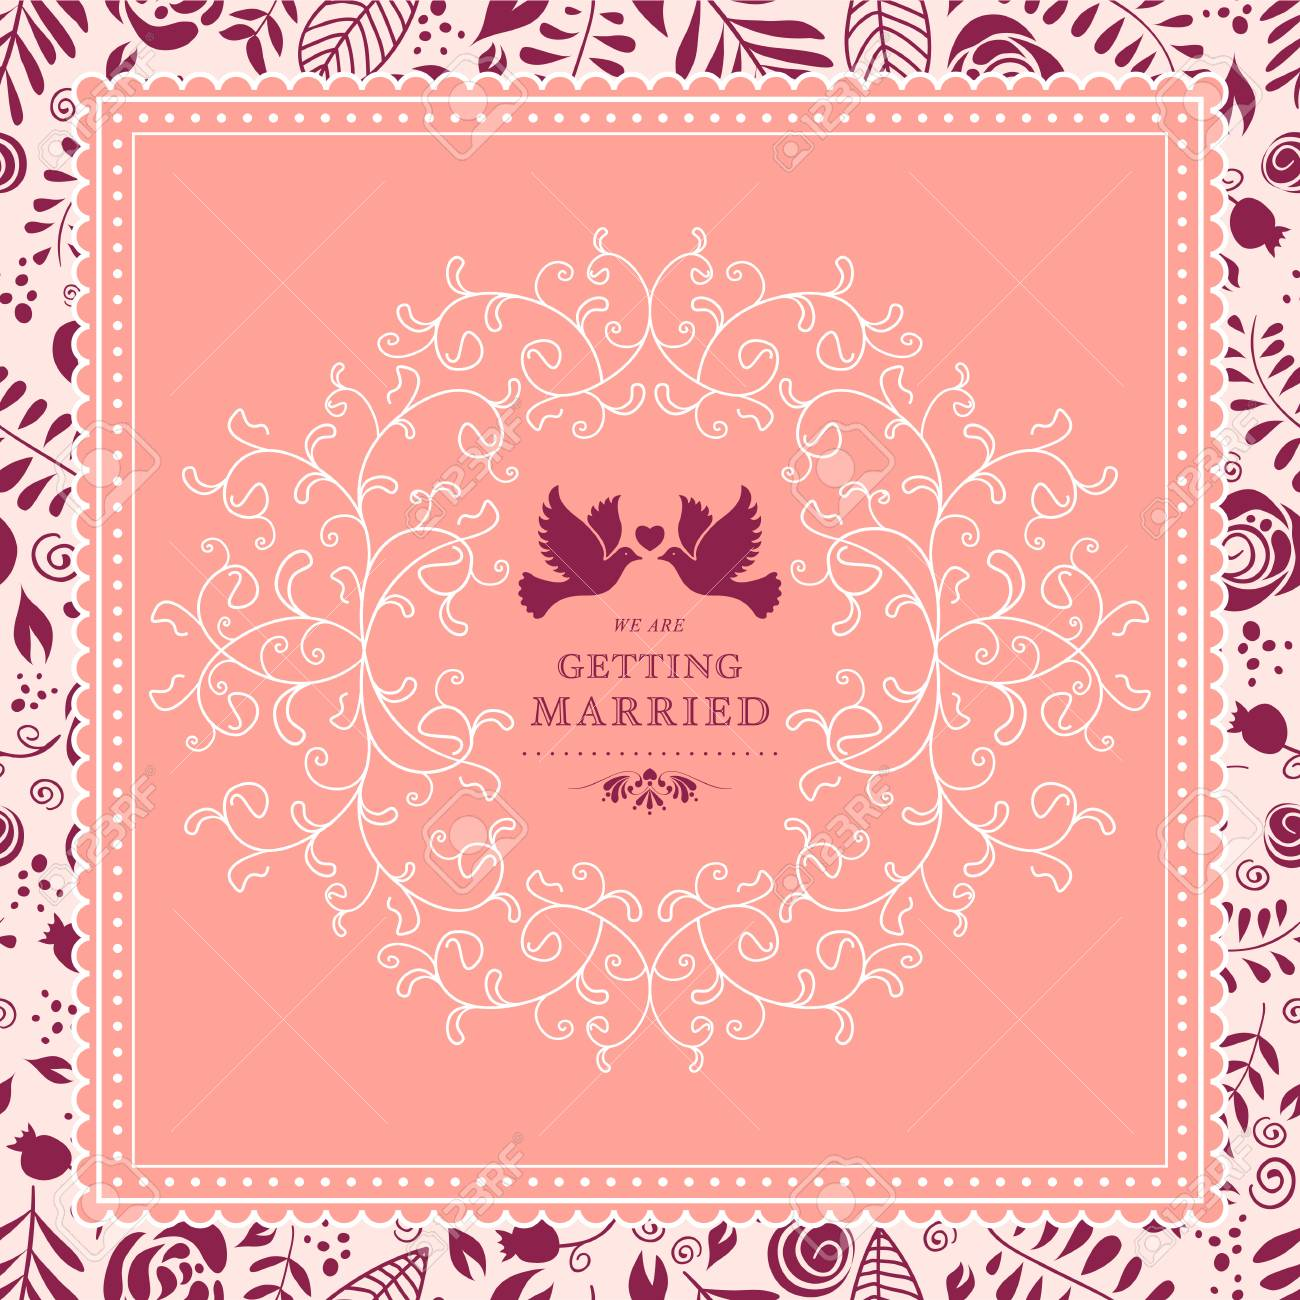 wedding card or invitation with floral ornament background royalty